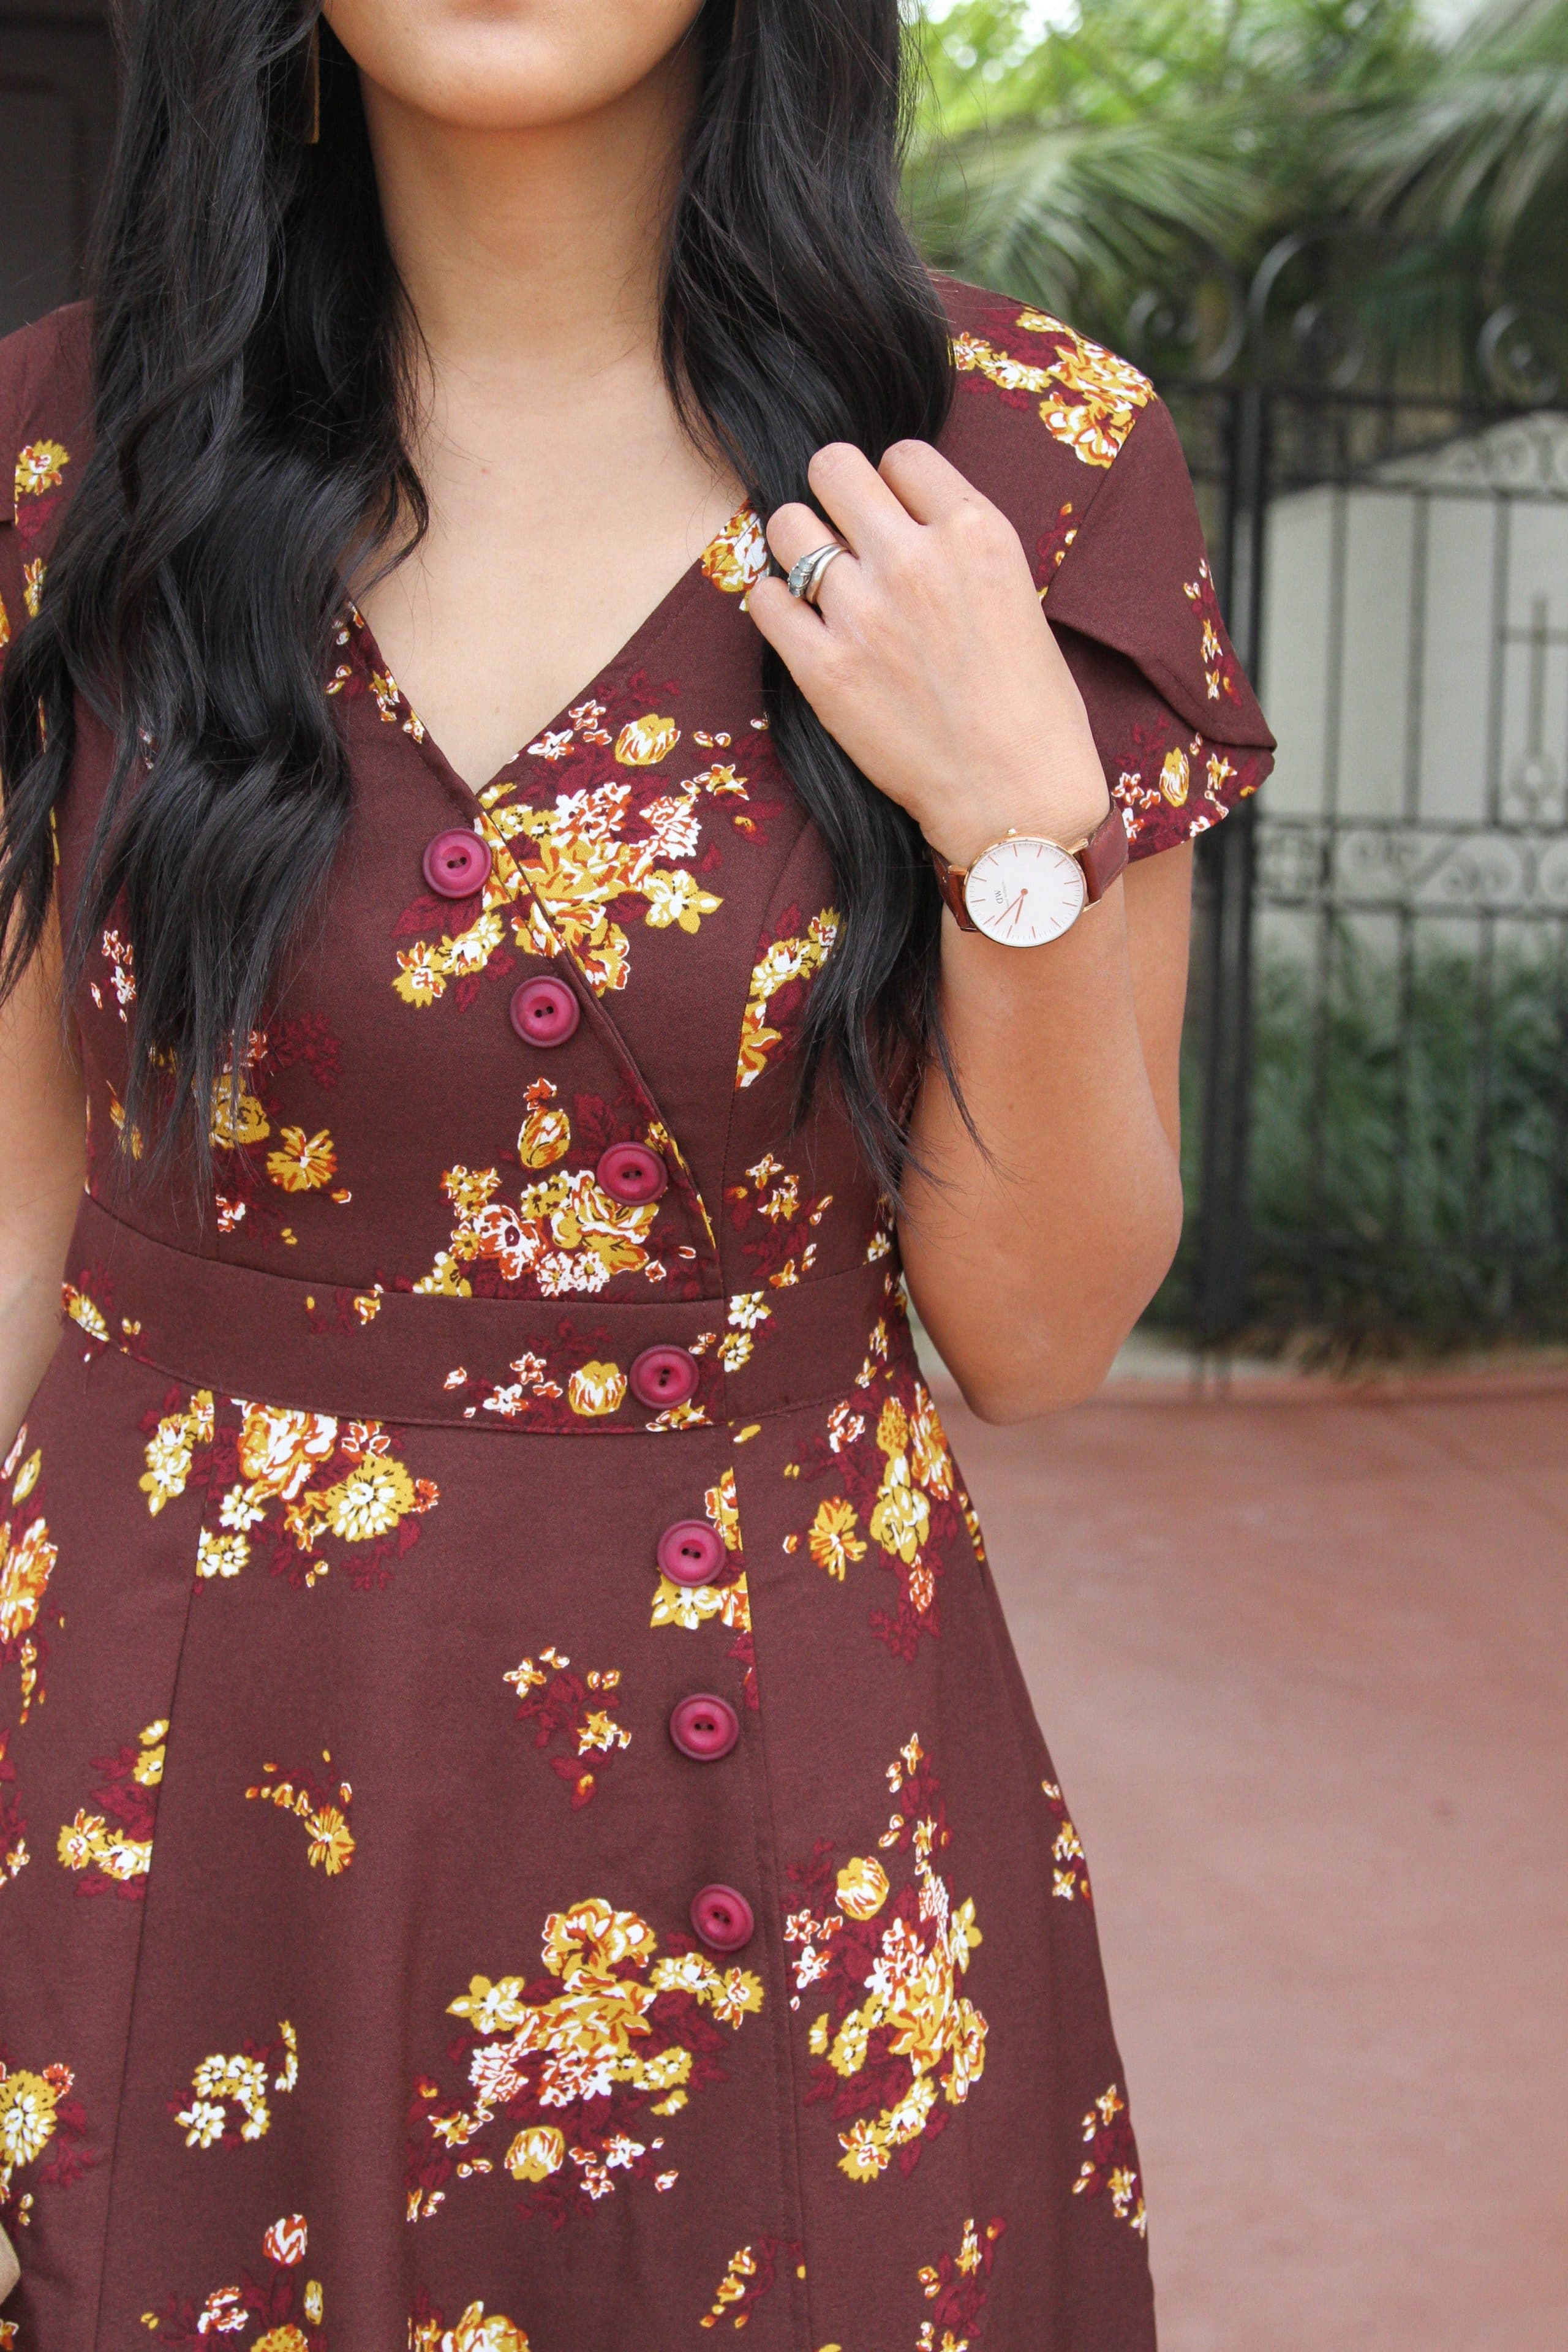 Maroon Floral Dress and Buttons Details